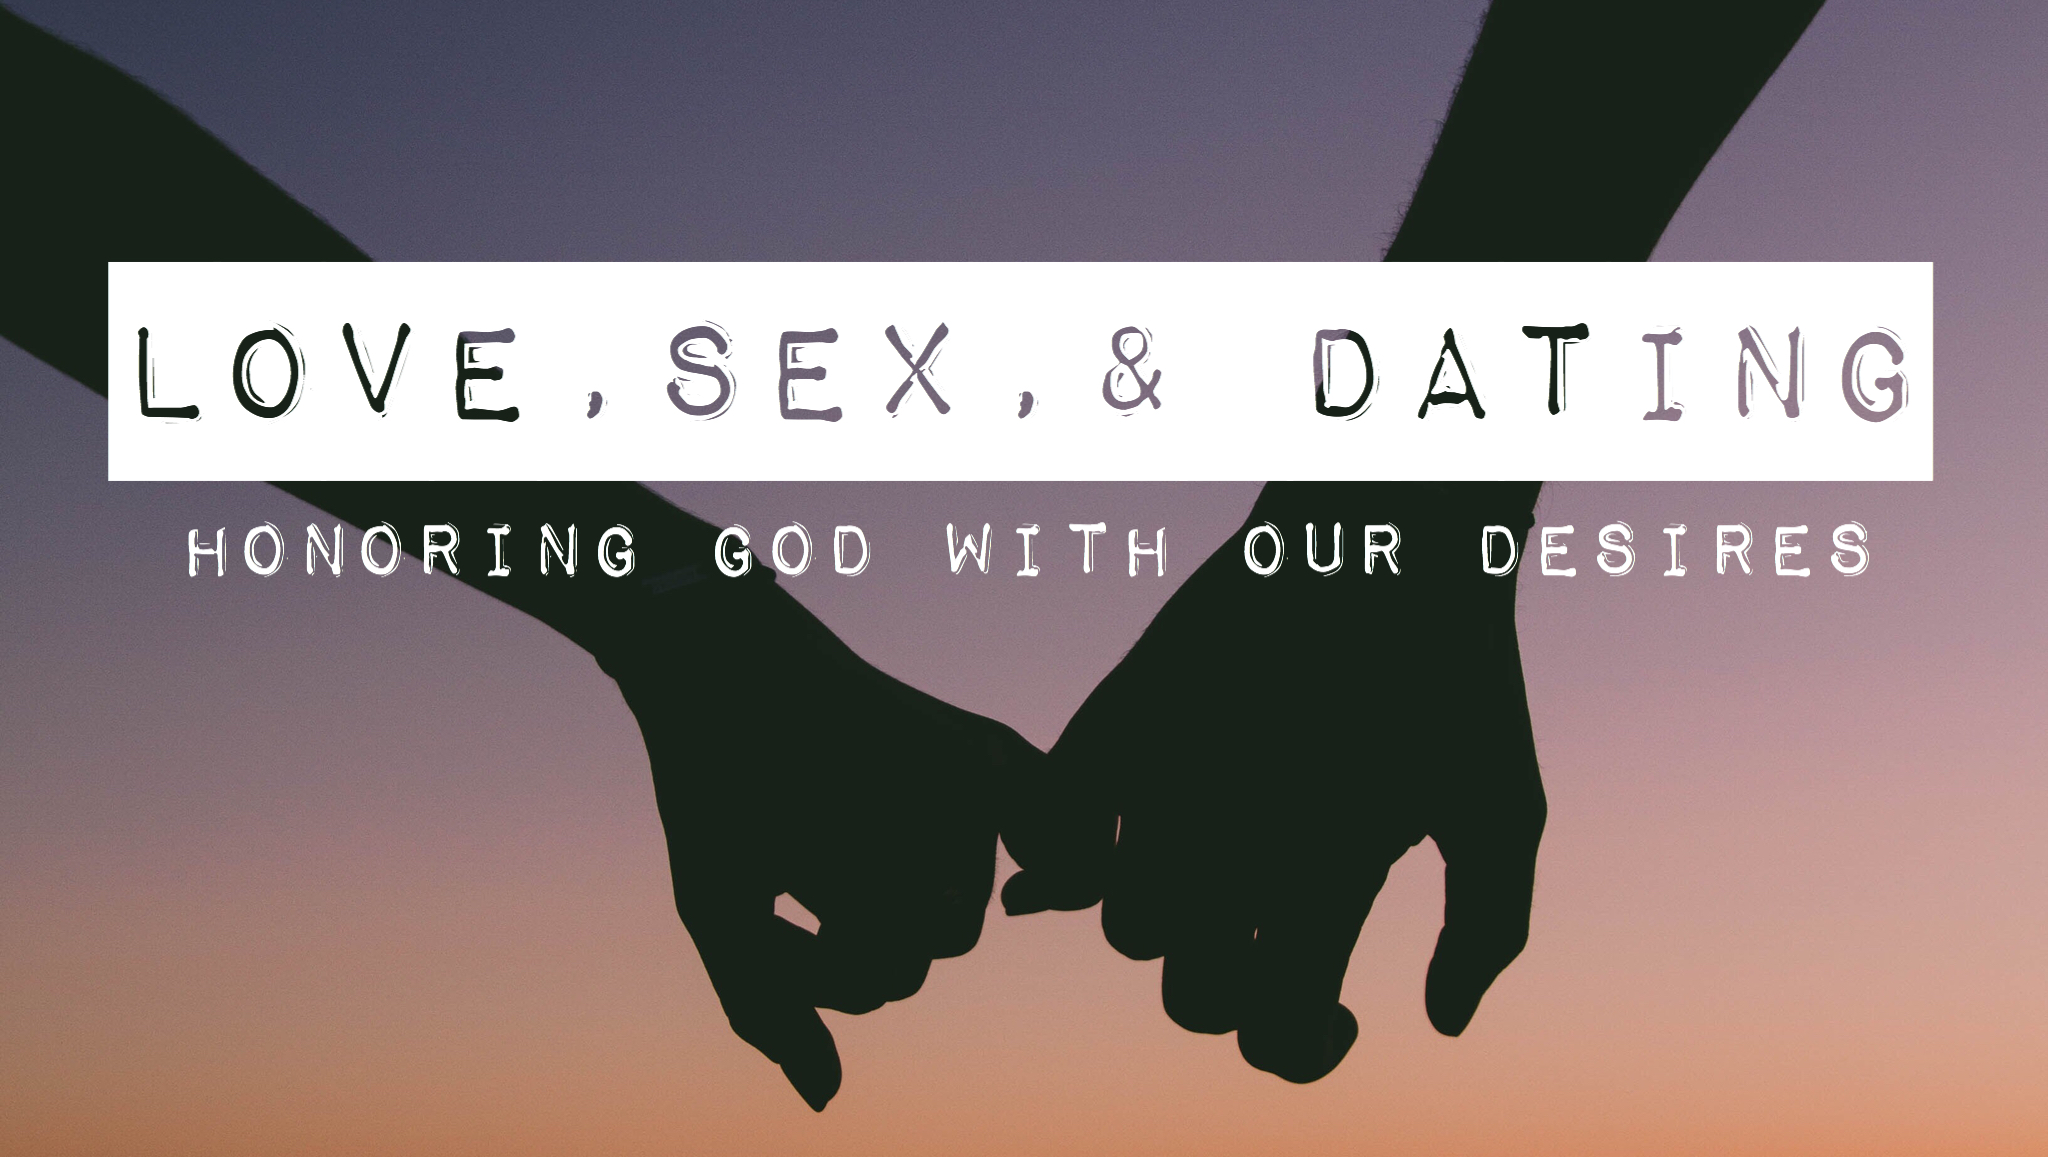 Love, Sex, & Dating 4.jpeg